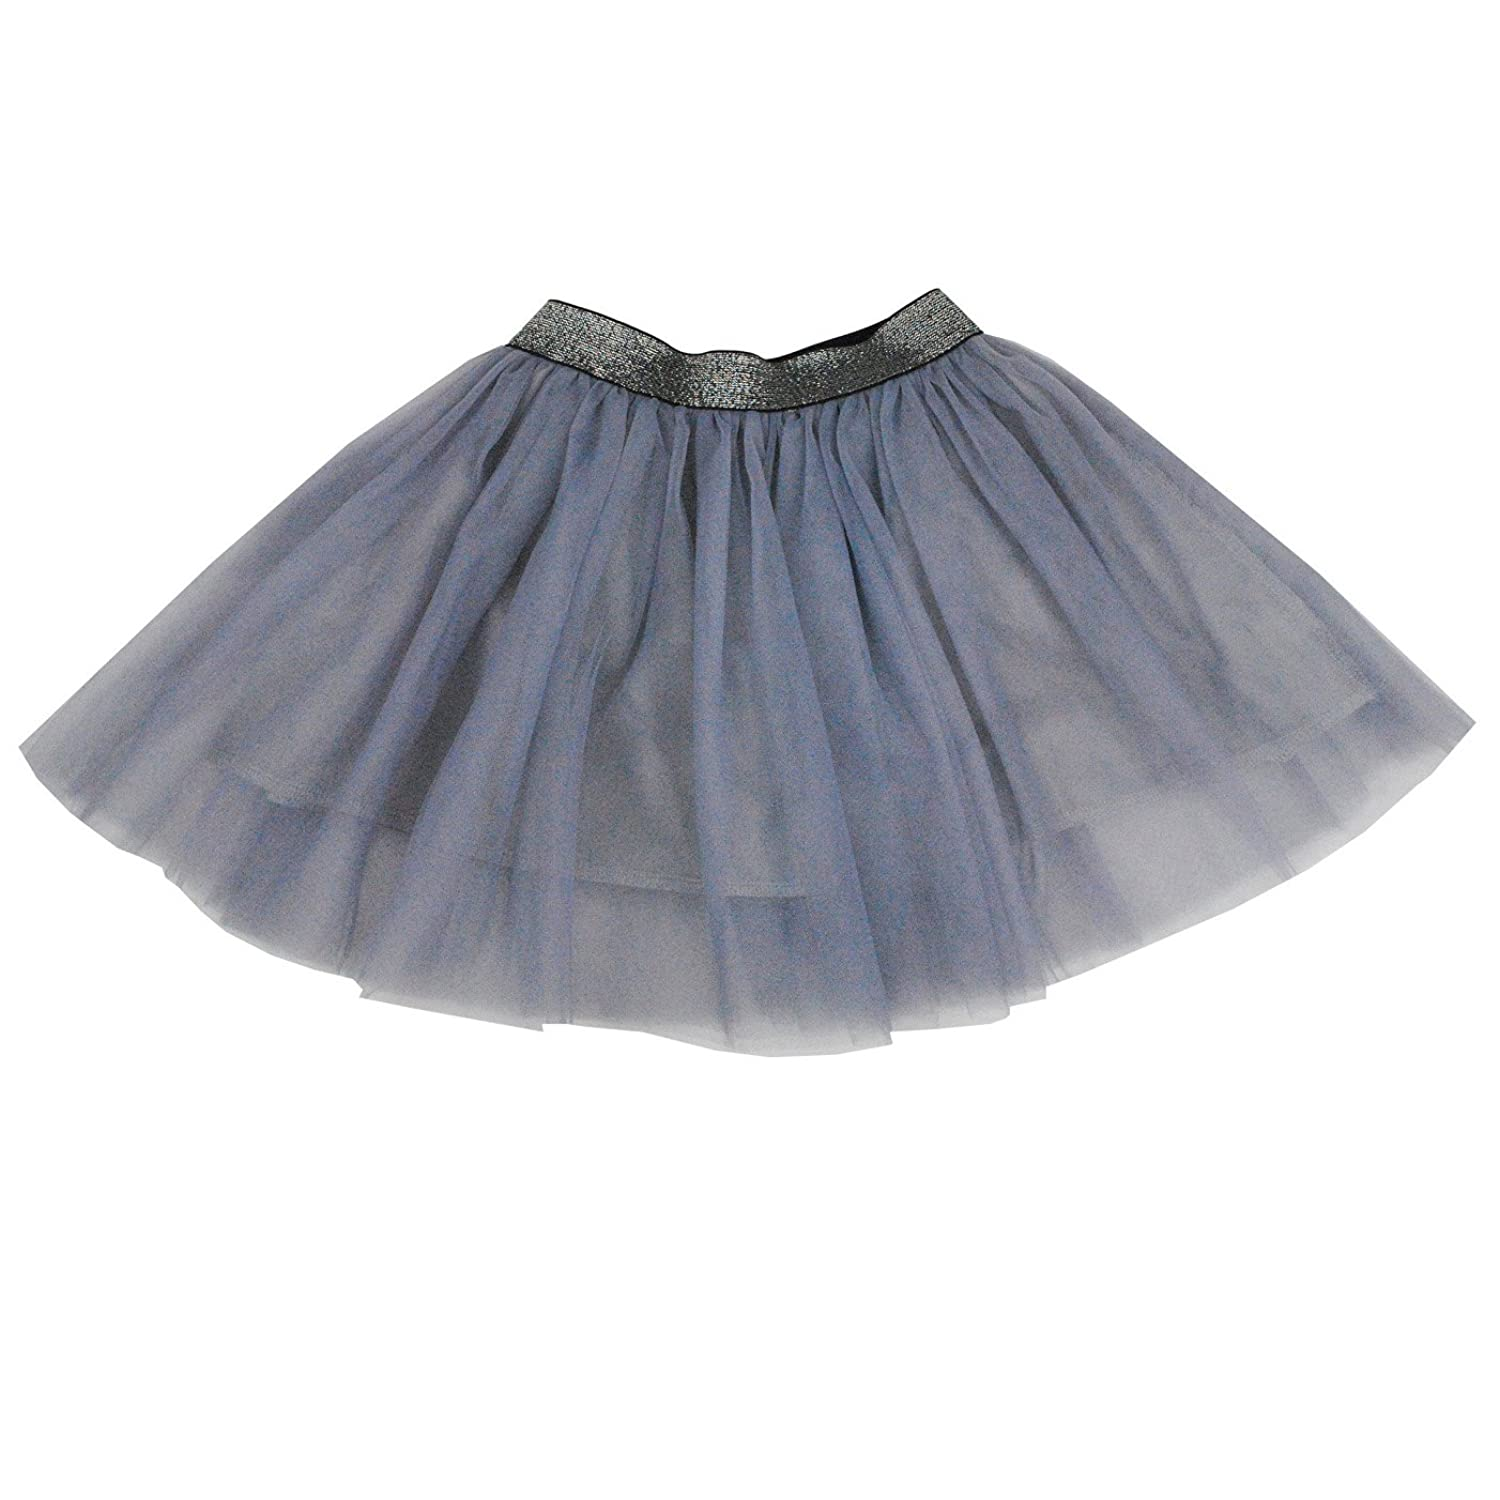 0df0db8a90 Material: We are better because of 100%soft cotton lining, Breathable,  sweat-absorbent, make children more confort. With 3 layers of soft and  fluffy tulle ...